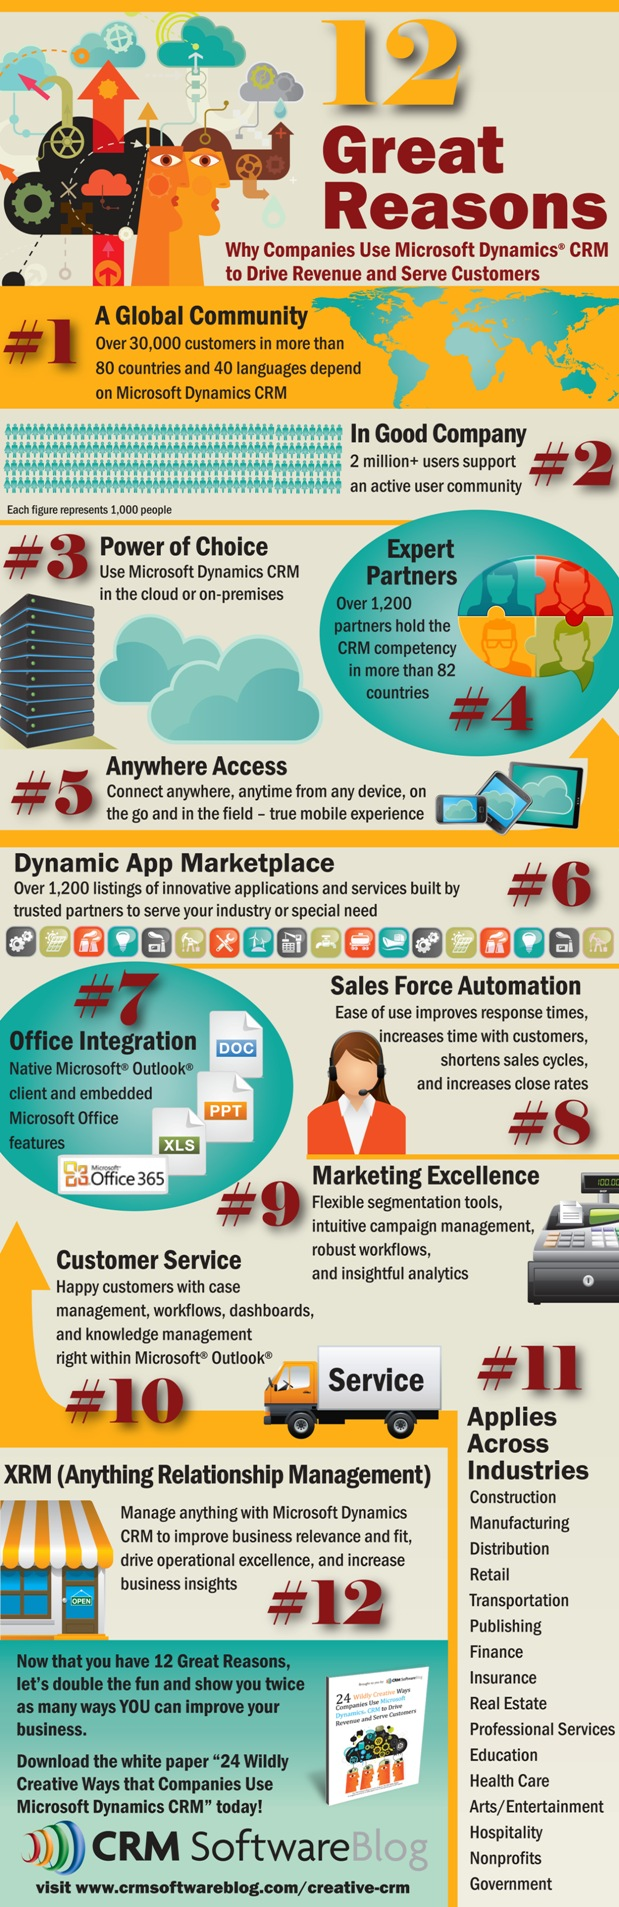 Infographic: 12 Great Reasons Companies Use Microsoft Dynamics - 6/29/12